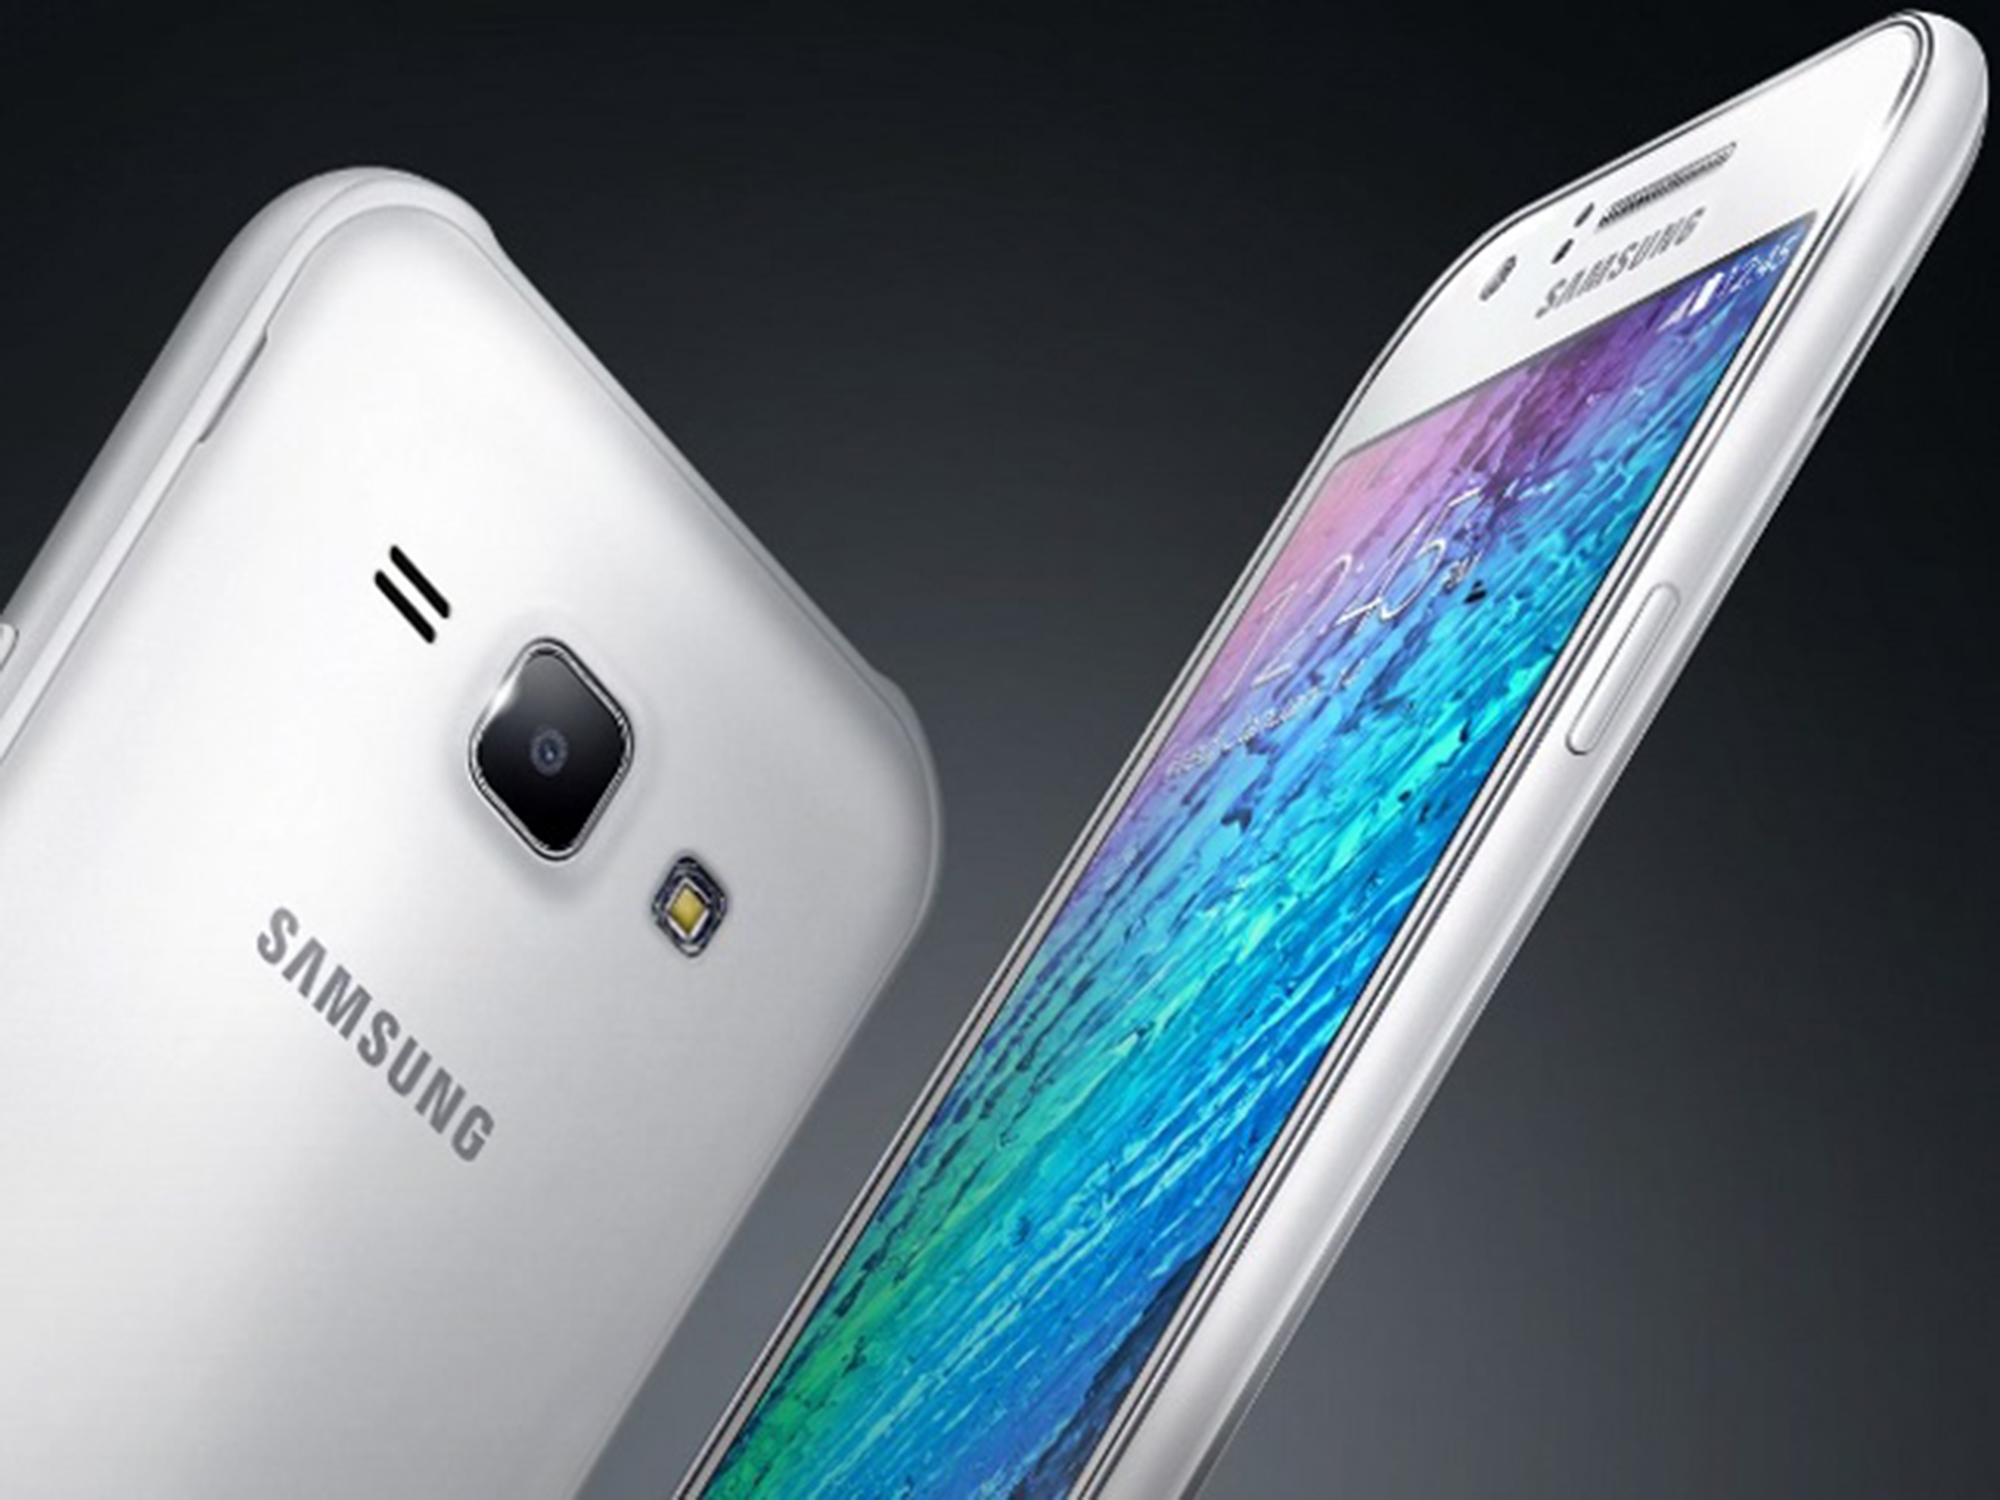 samsung silently unveils its affordable galaxy j2 2017 in india 1